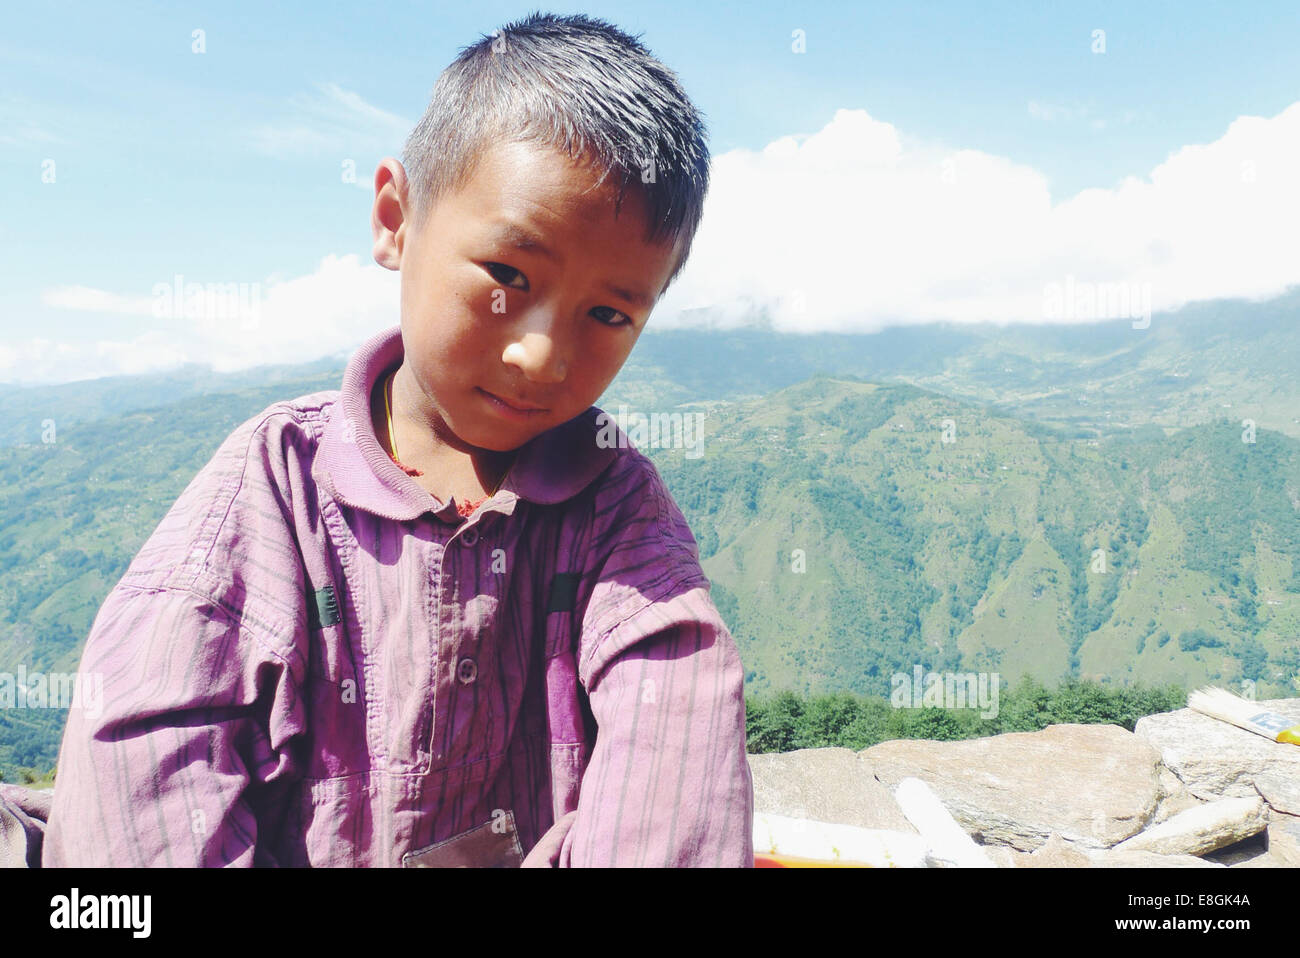 Nepal, Portrait of boy (10-11) sitting on stone wall in mountains - Stock Image